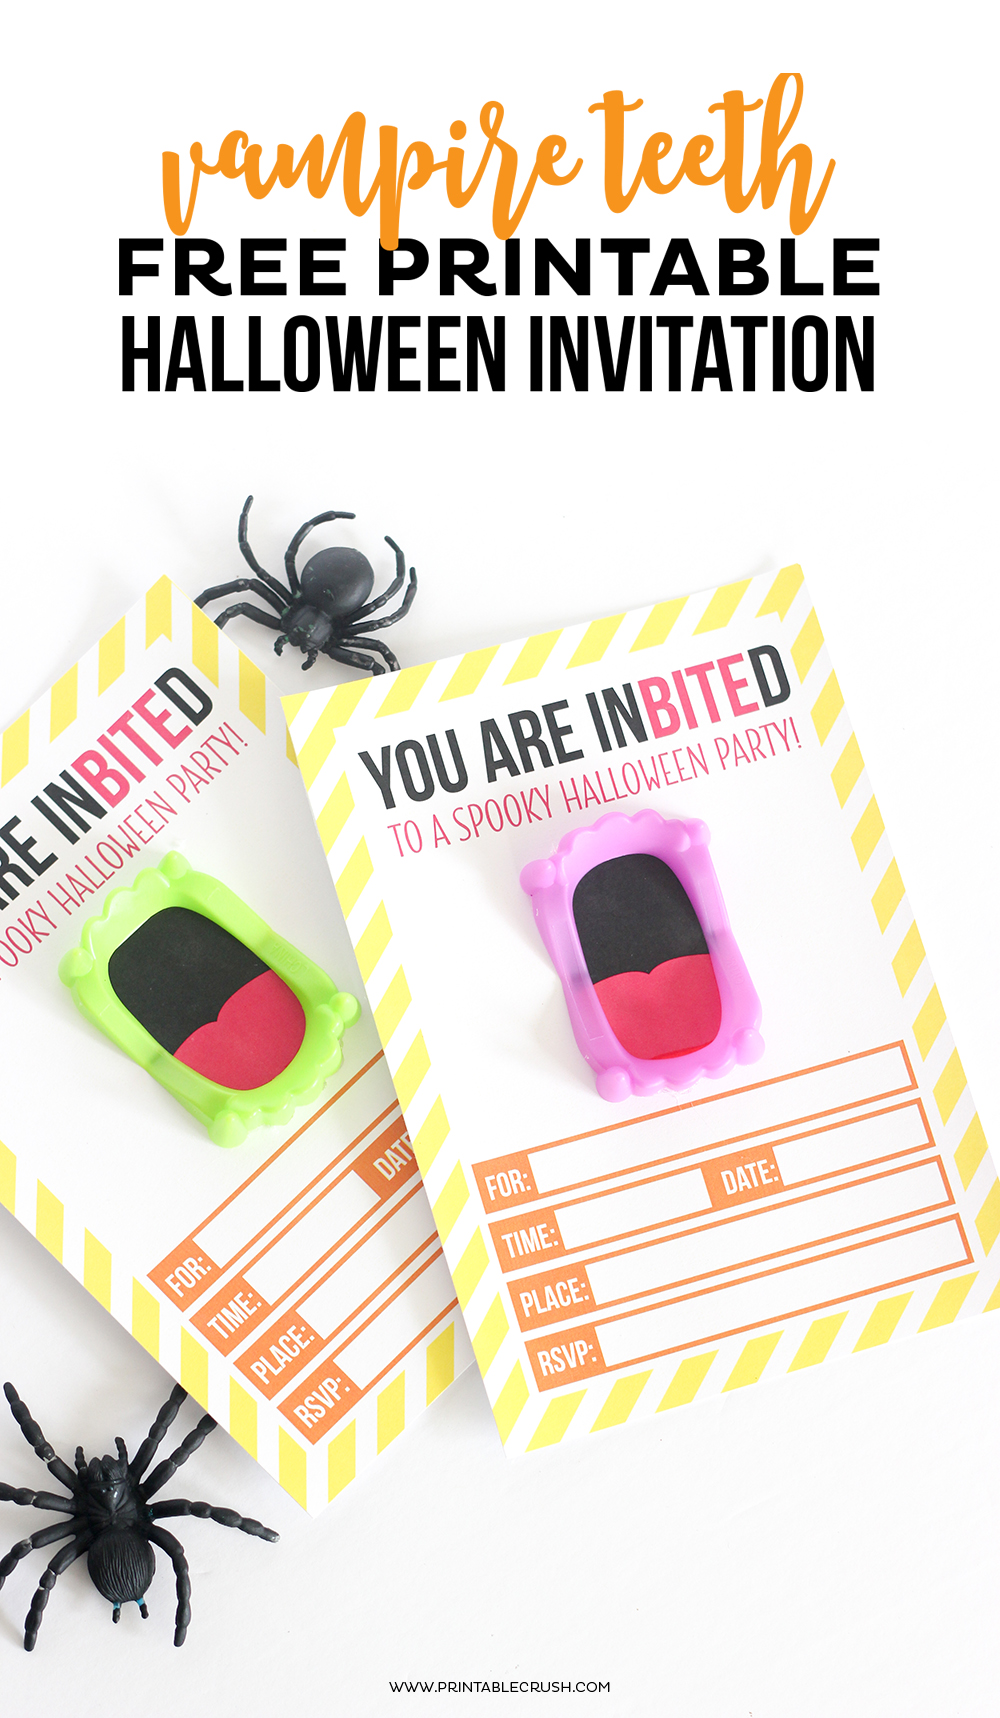 graphic relating to Halloween Invitations Printable named Absolutely free Printable Vampire Halloween Invitation - Printable Crush